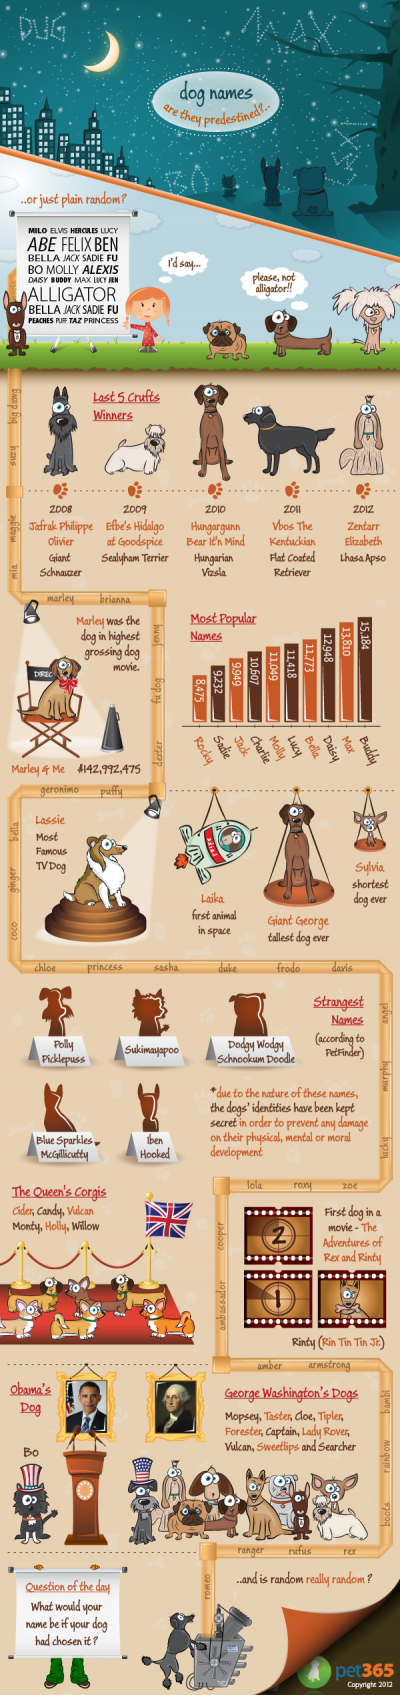 dog name infographie